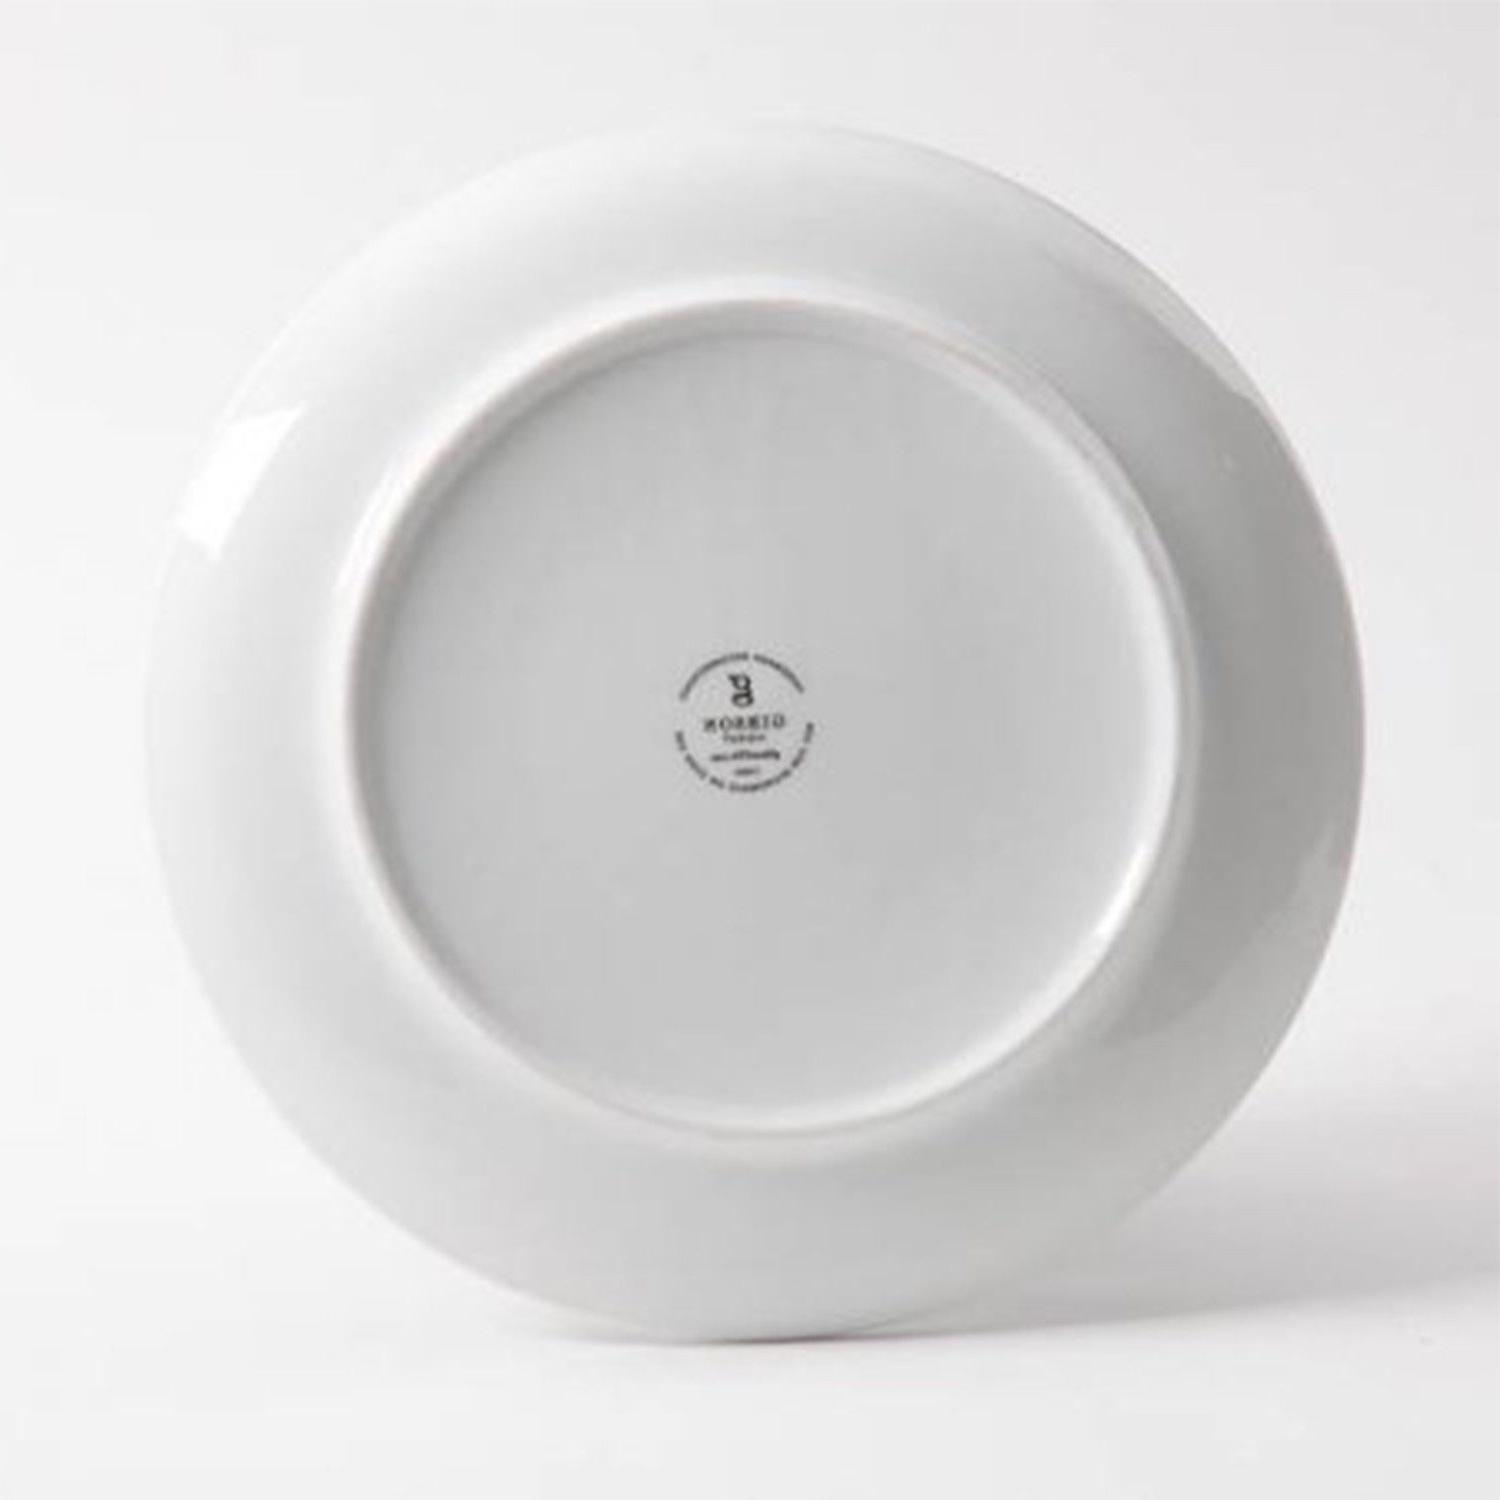 16 Plates Dishes Bowls